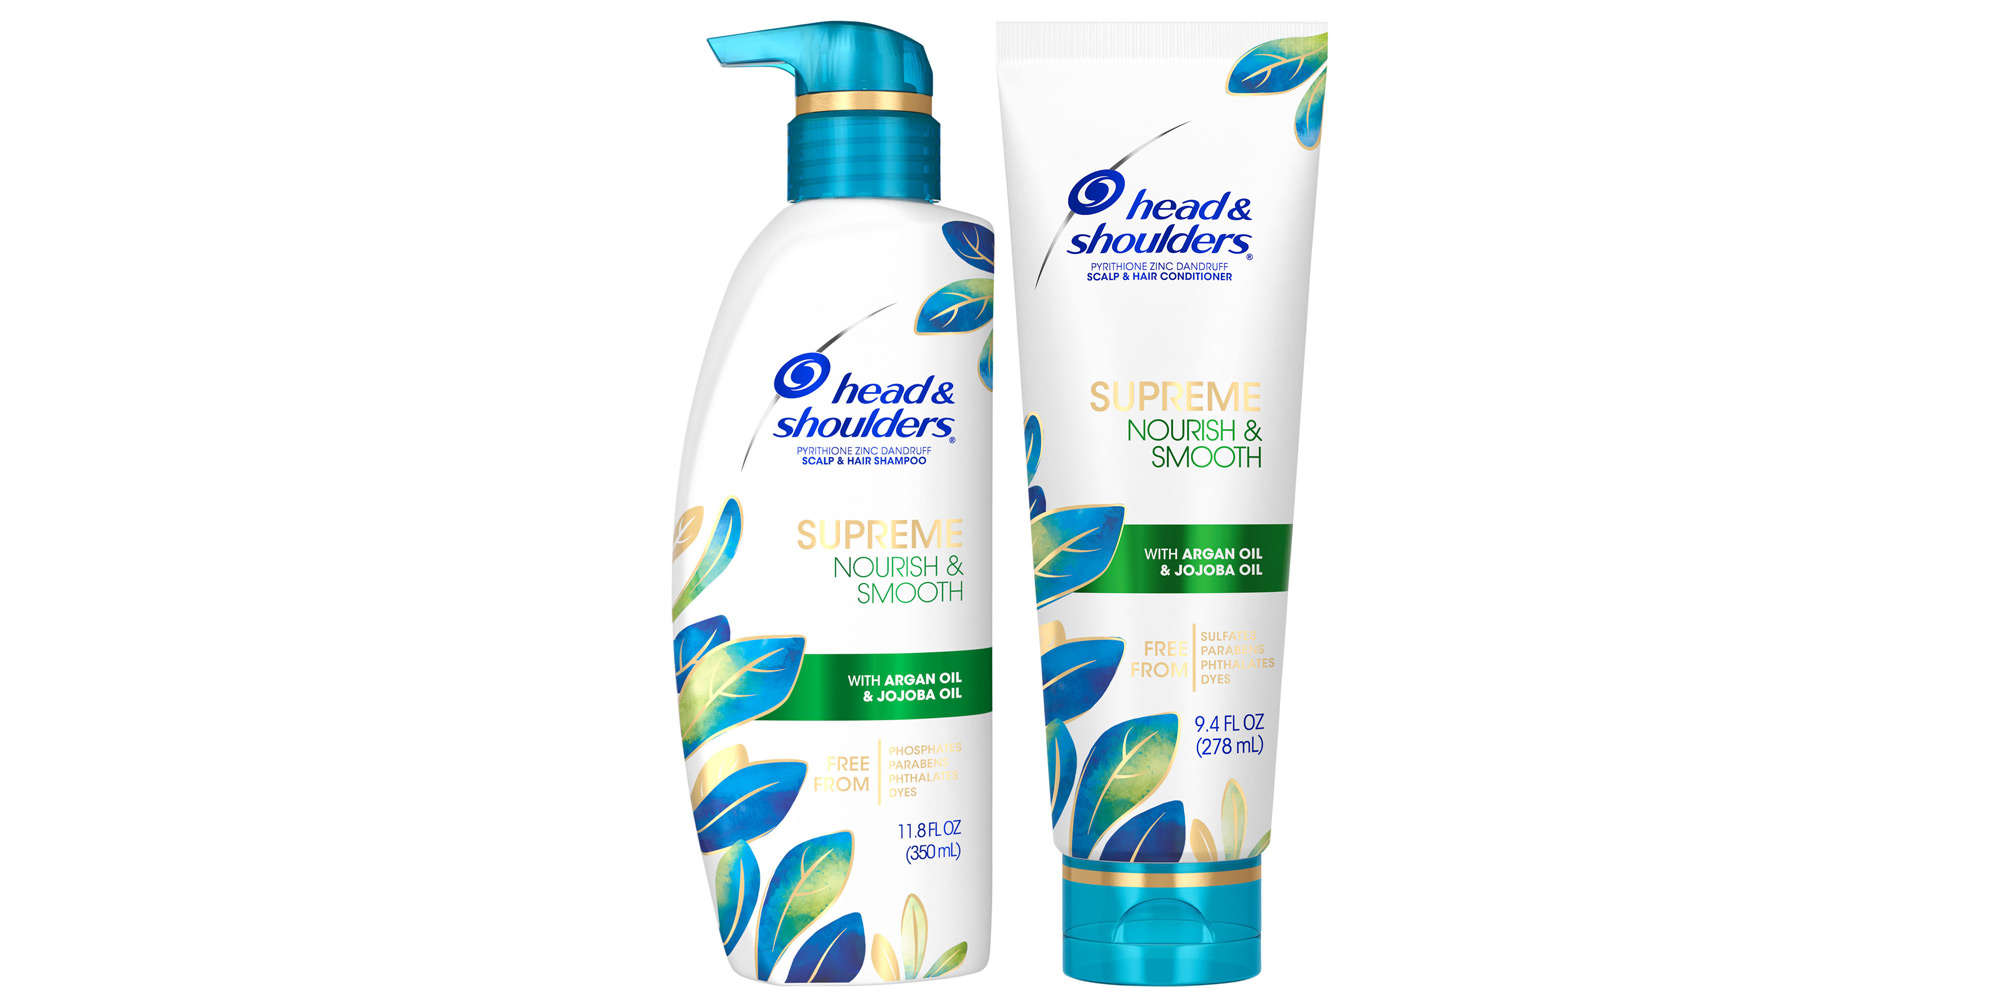 Head & Shoulders Supreme Nourish & Smooth Shampoo and Conditioner